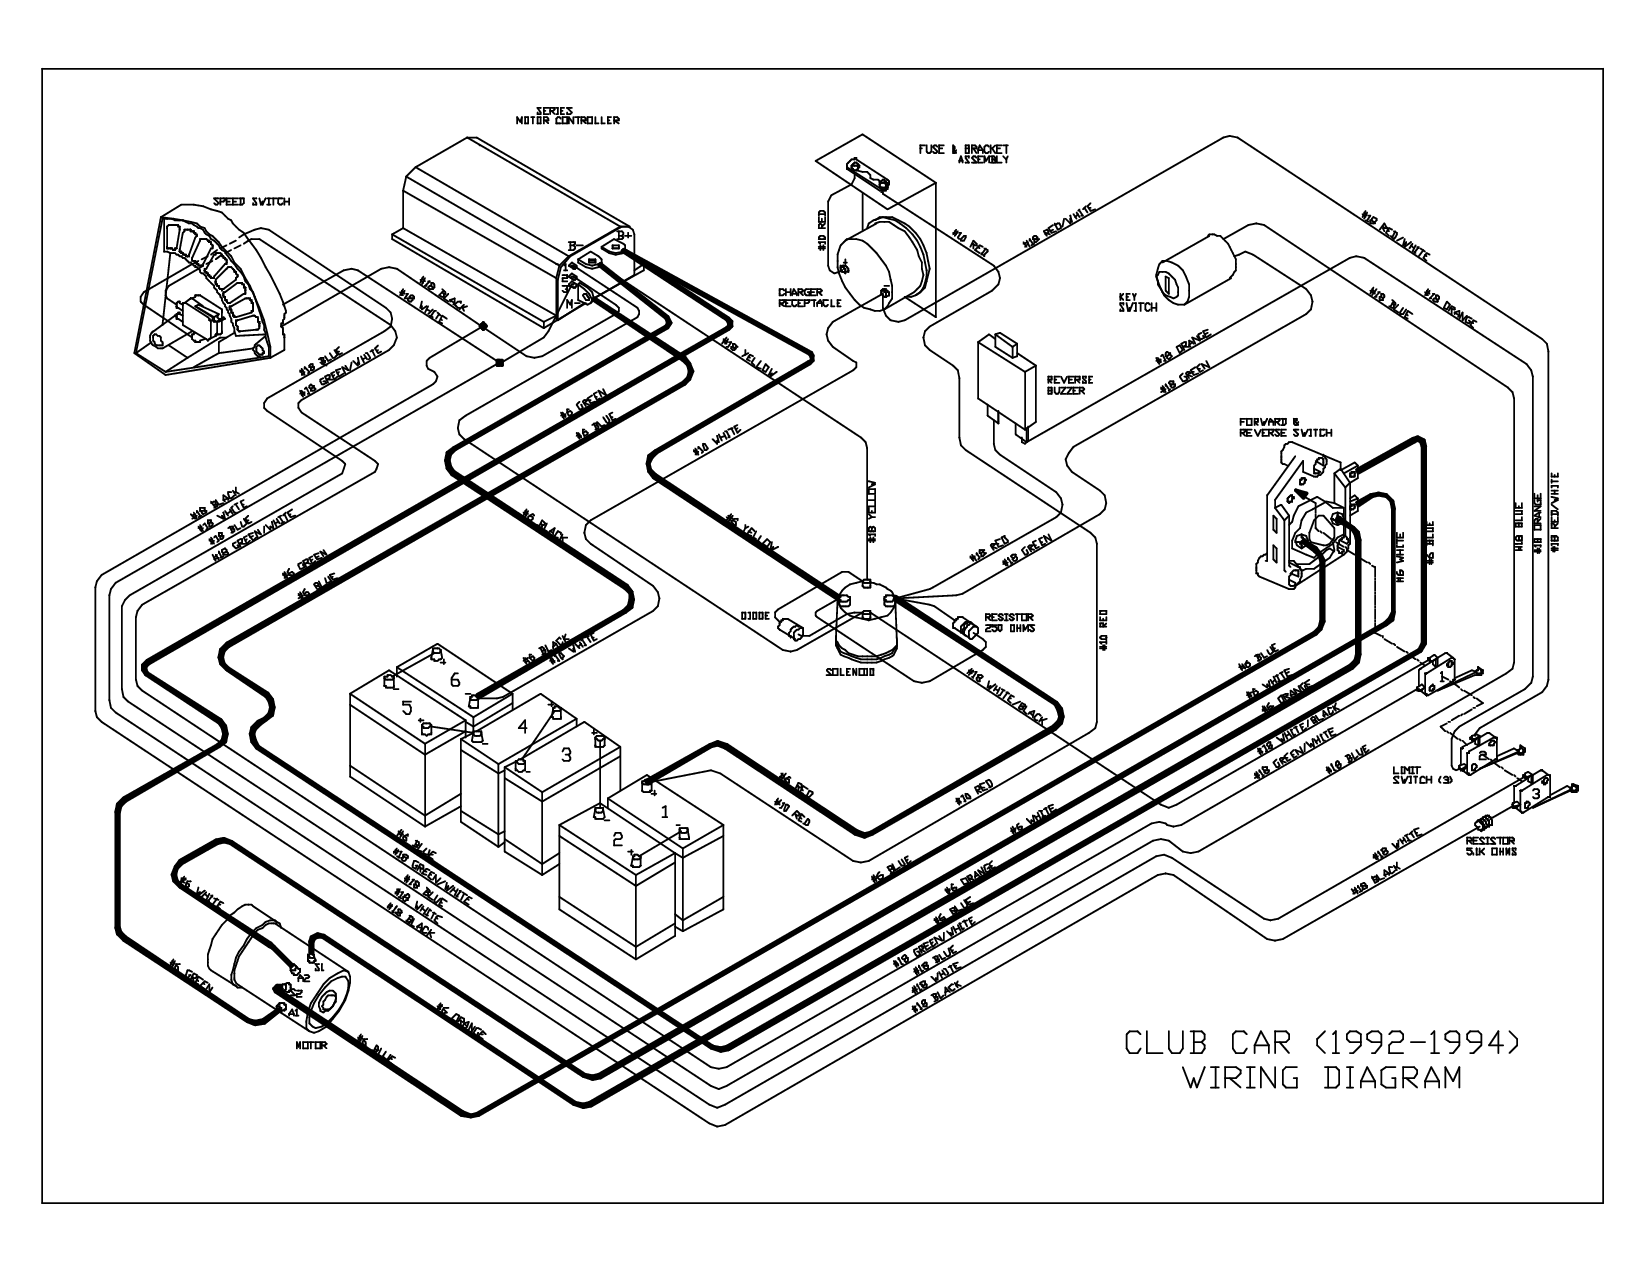 1995 Club Car Wiring Diagram